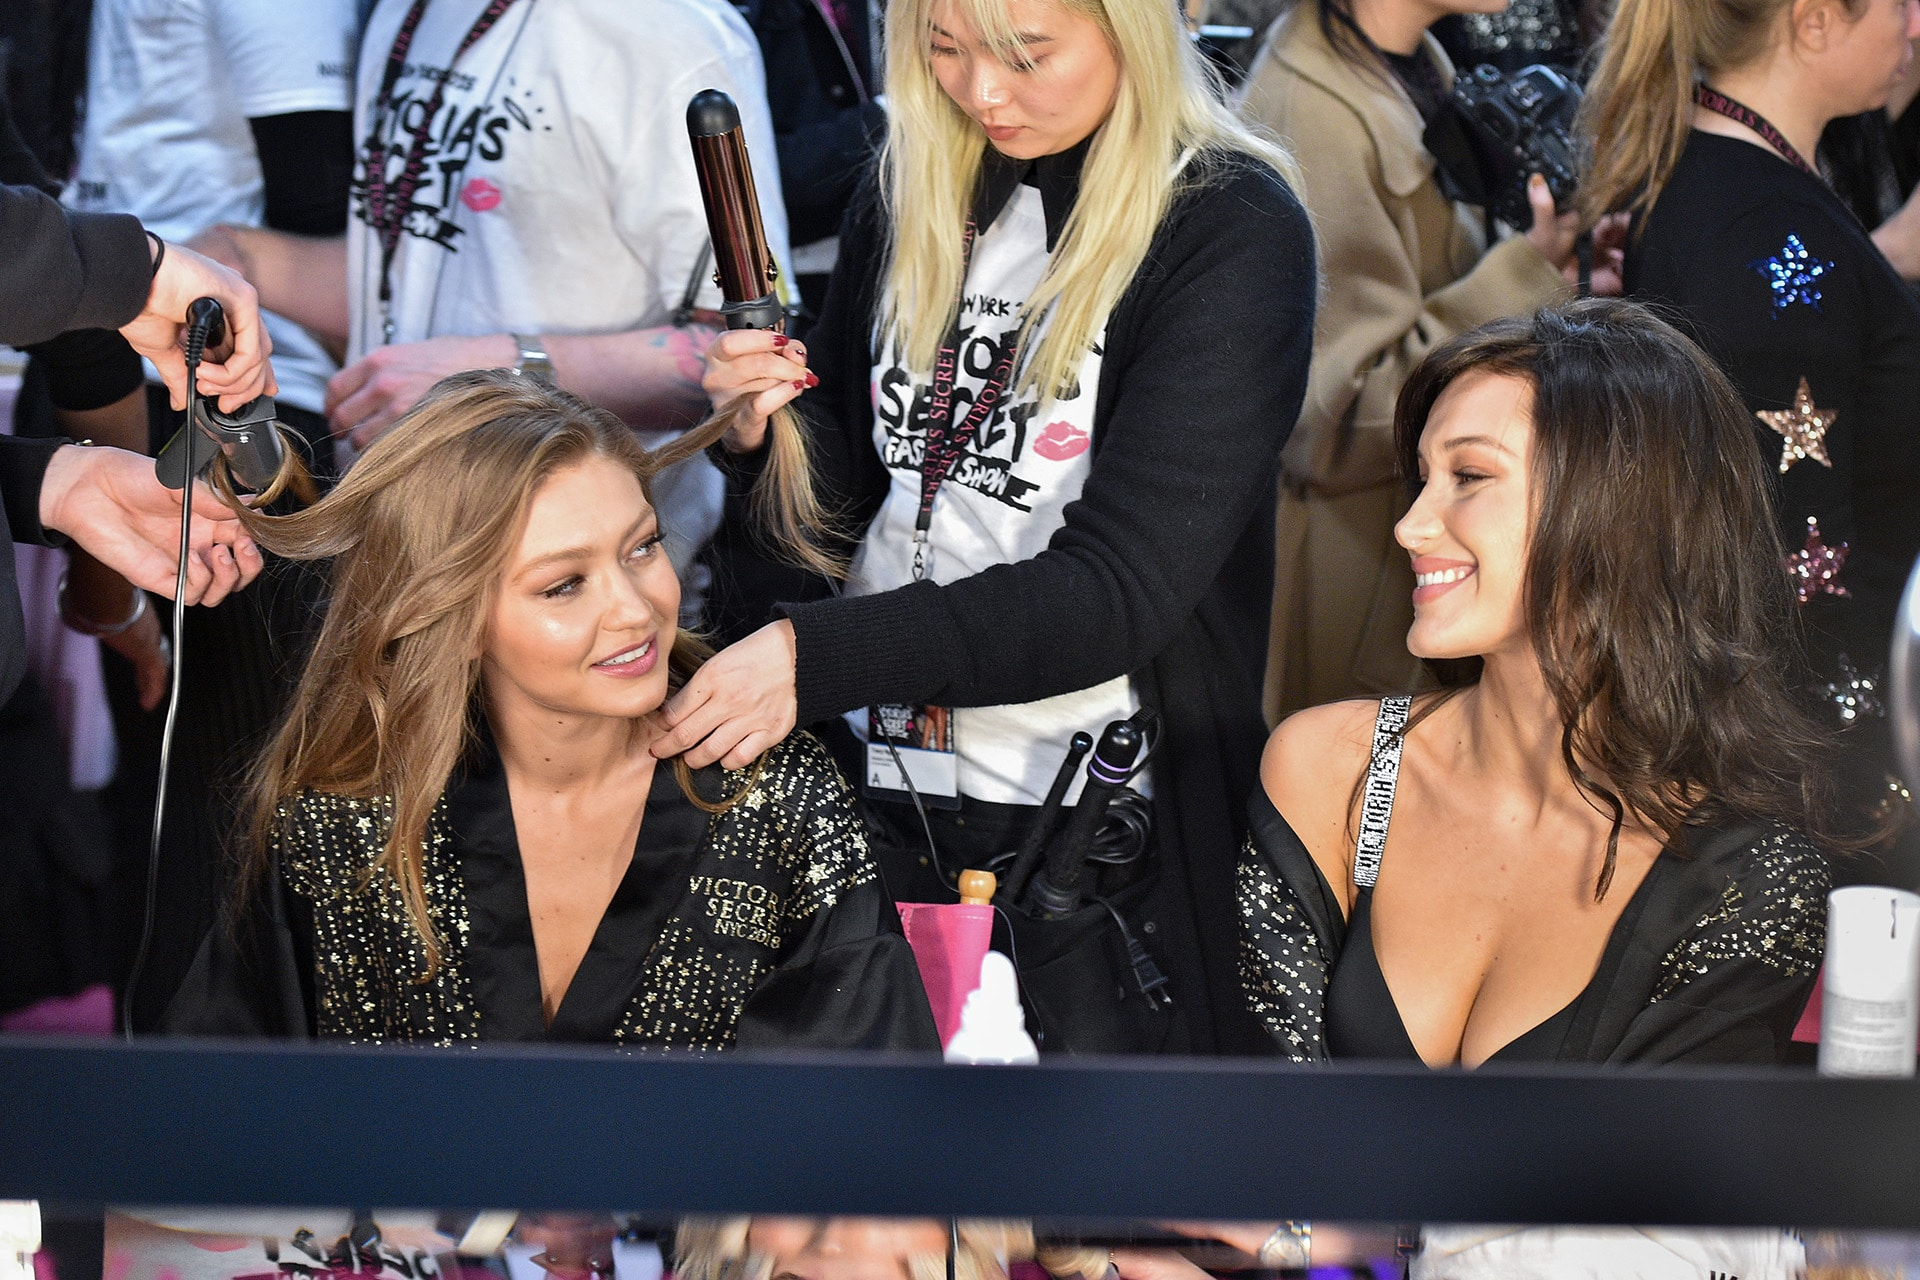 Gigi Hadid cries when she sees sister Bella Hadid walk the Victoria's Secret runway